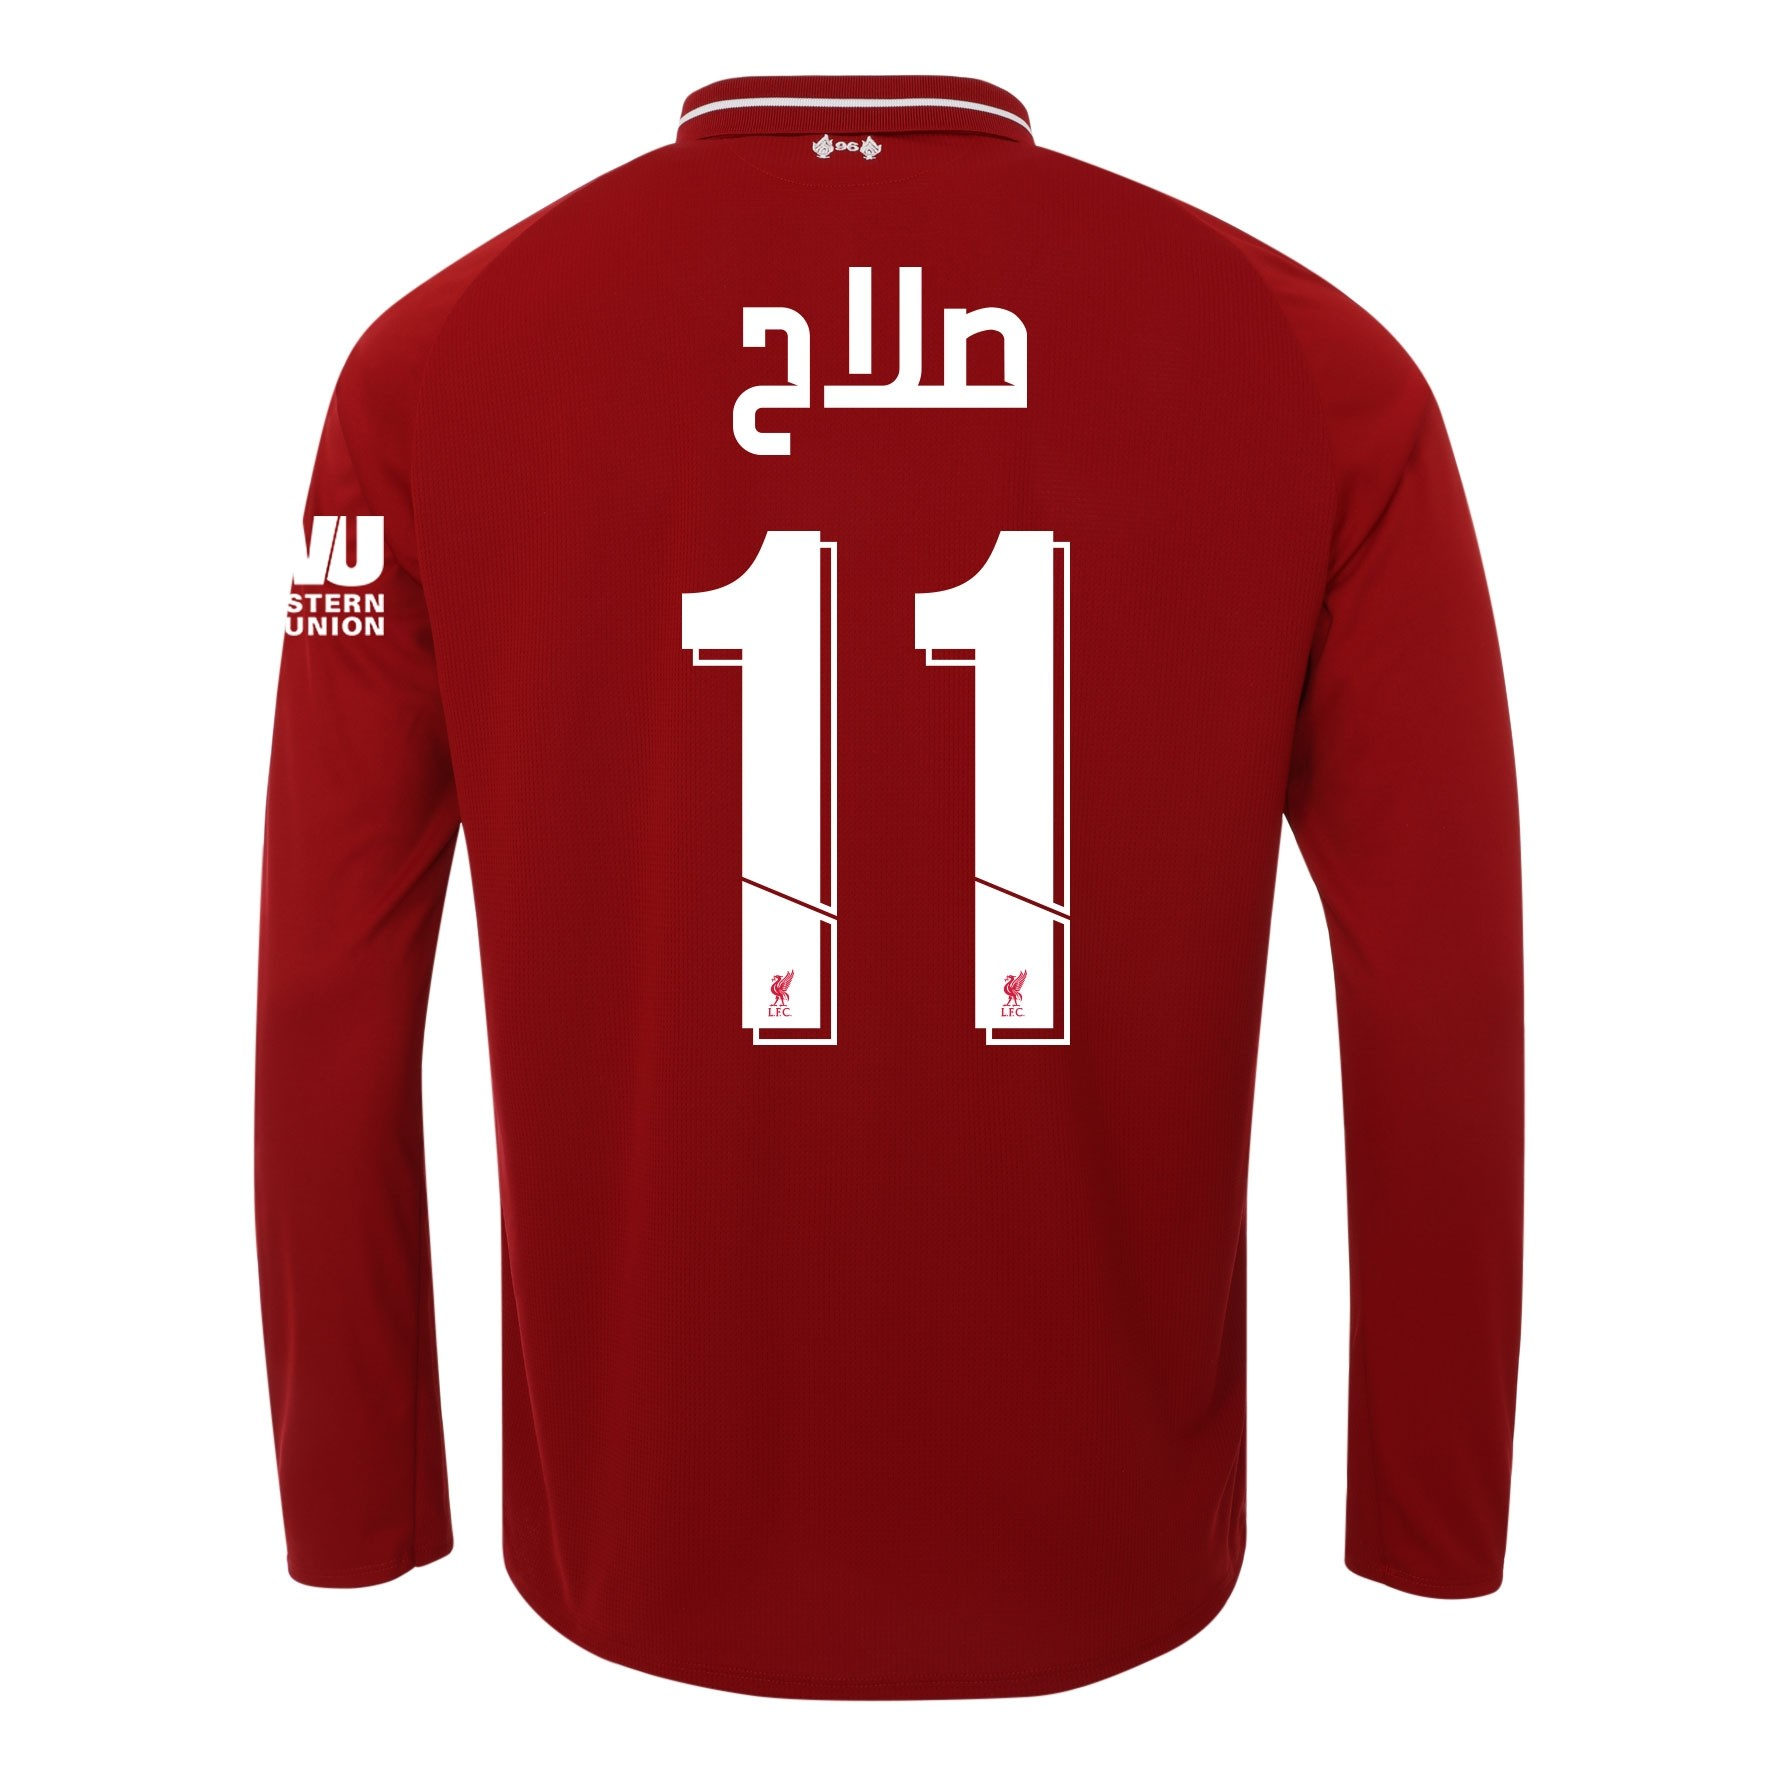 LFC Junior Long Sleeve Home Shirt 18/19 - Salah